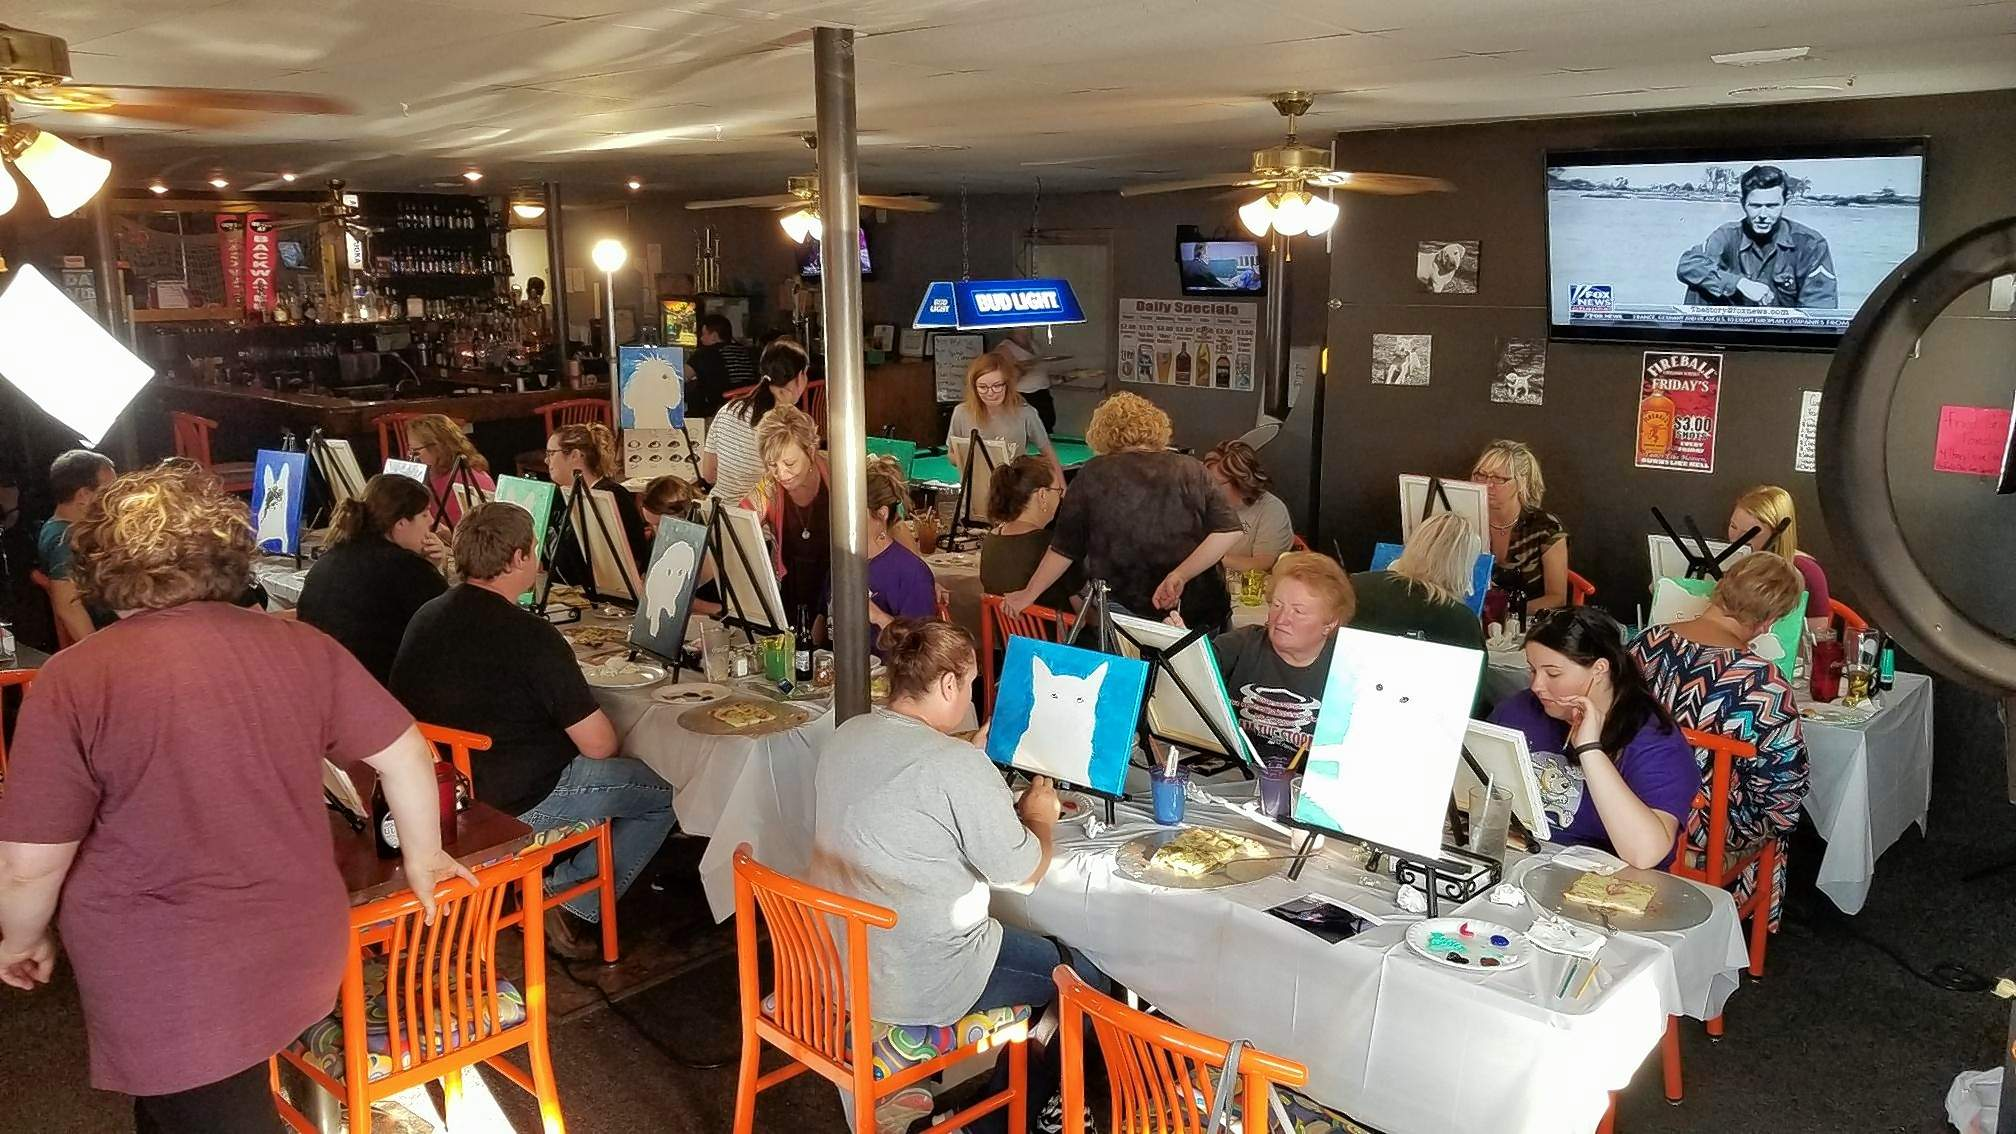 Area pet owners were busy painting portraits of their pets as a fundraiser for the Perry County Humane Society last week at Backwater Pub and Grub in Du Quoin. The event was such a success that a second such fundraiser has been planned for June 20 at the Twisted Pair, also in Du Quoin.